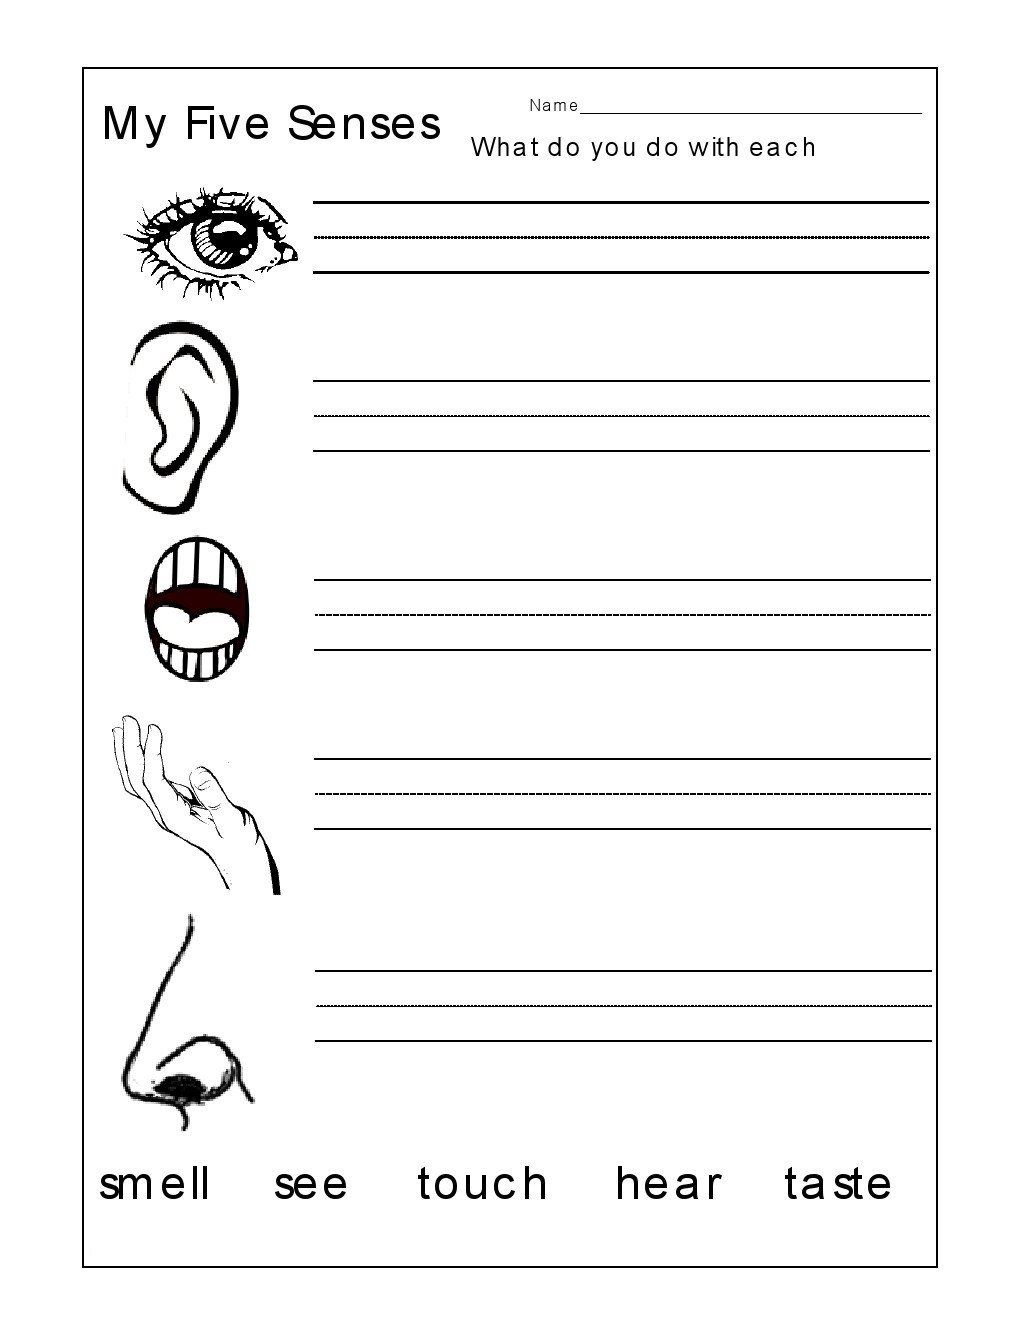 Five Senses Kindergarten Worksheet Kindergarten Worksheets Kindergarten Worksheets the 5